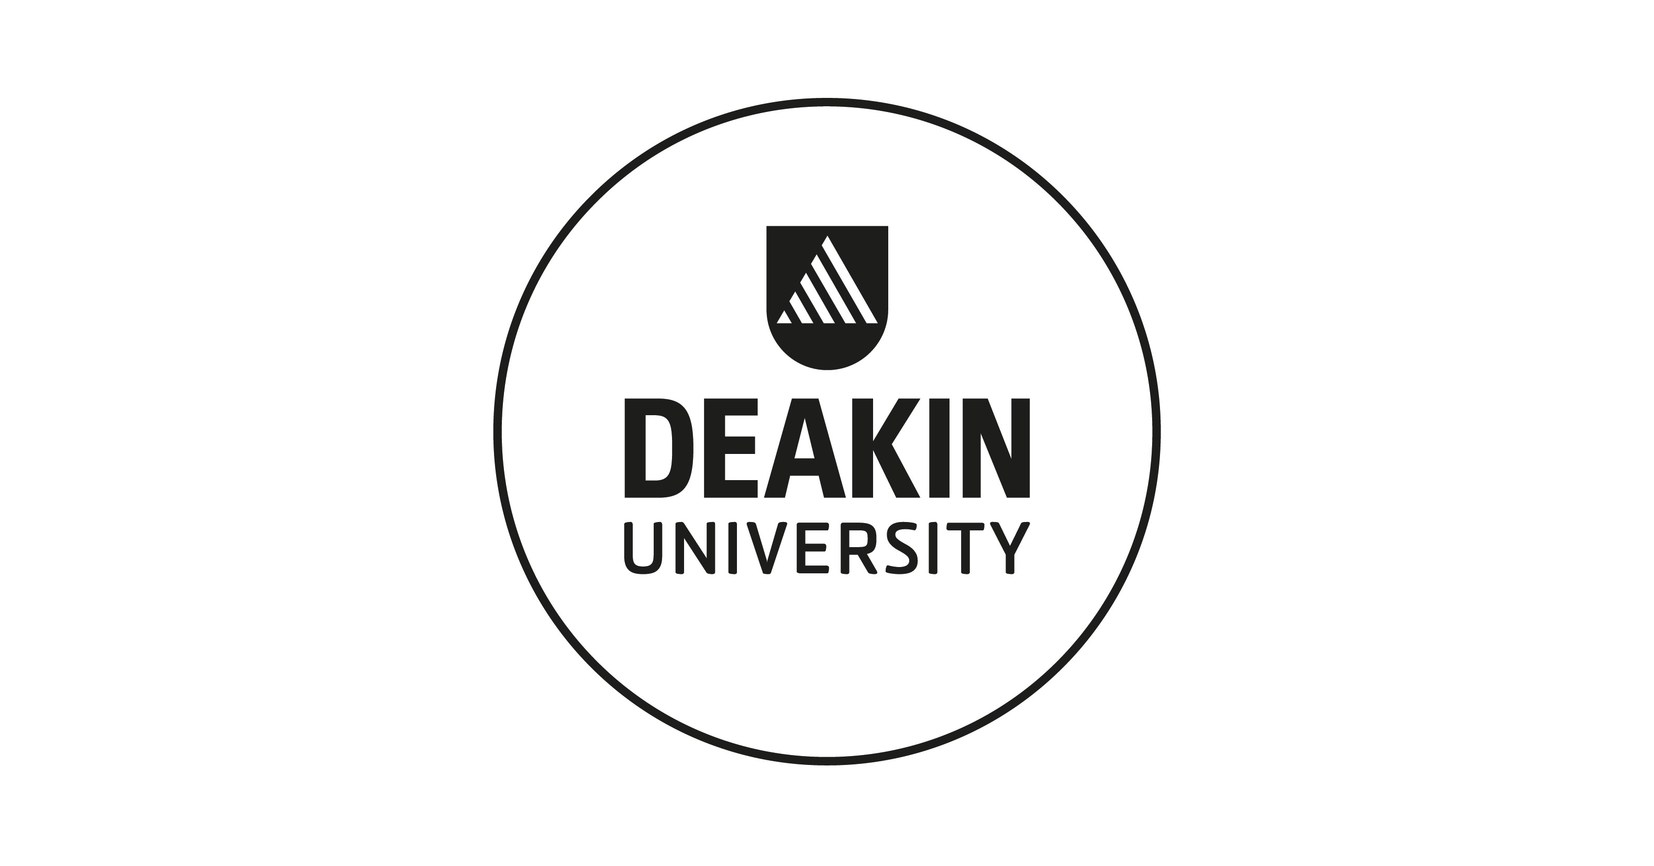 2020 VIEA Awards: Deakin Wins for Excellence in Employability and Career Development - PR Newswire India